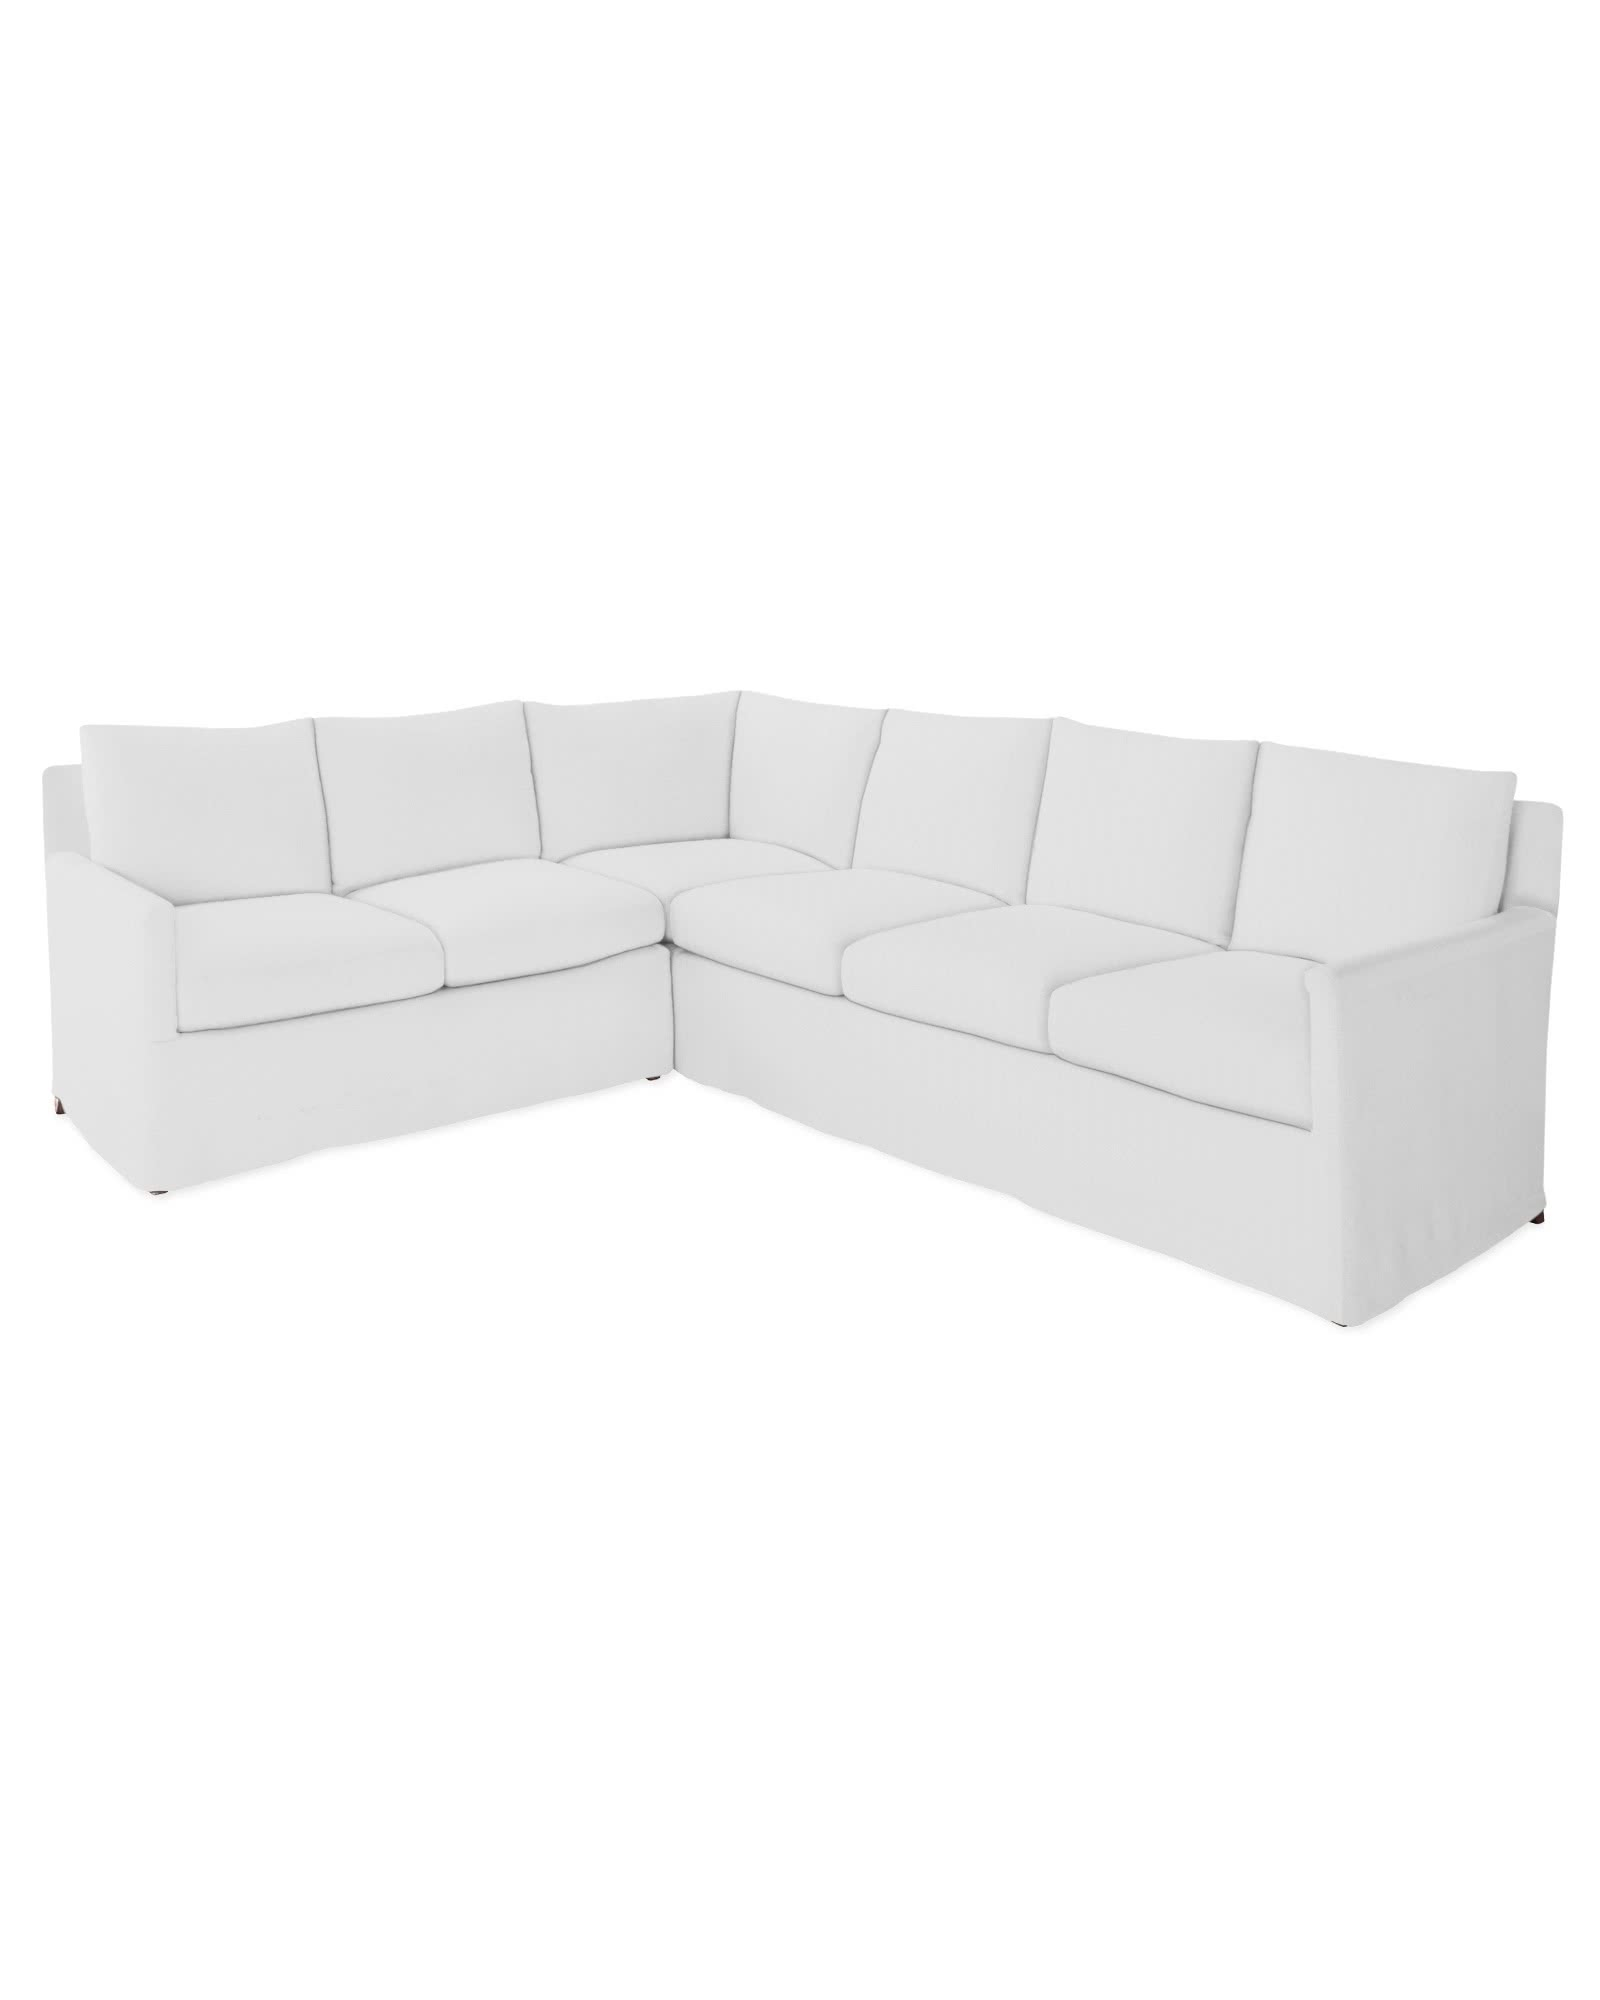 Spruce Street Left-Facing L-Sectional – Slipcovered,